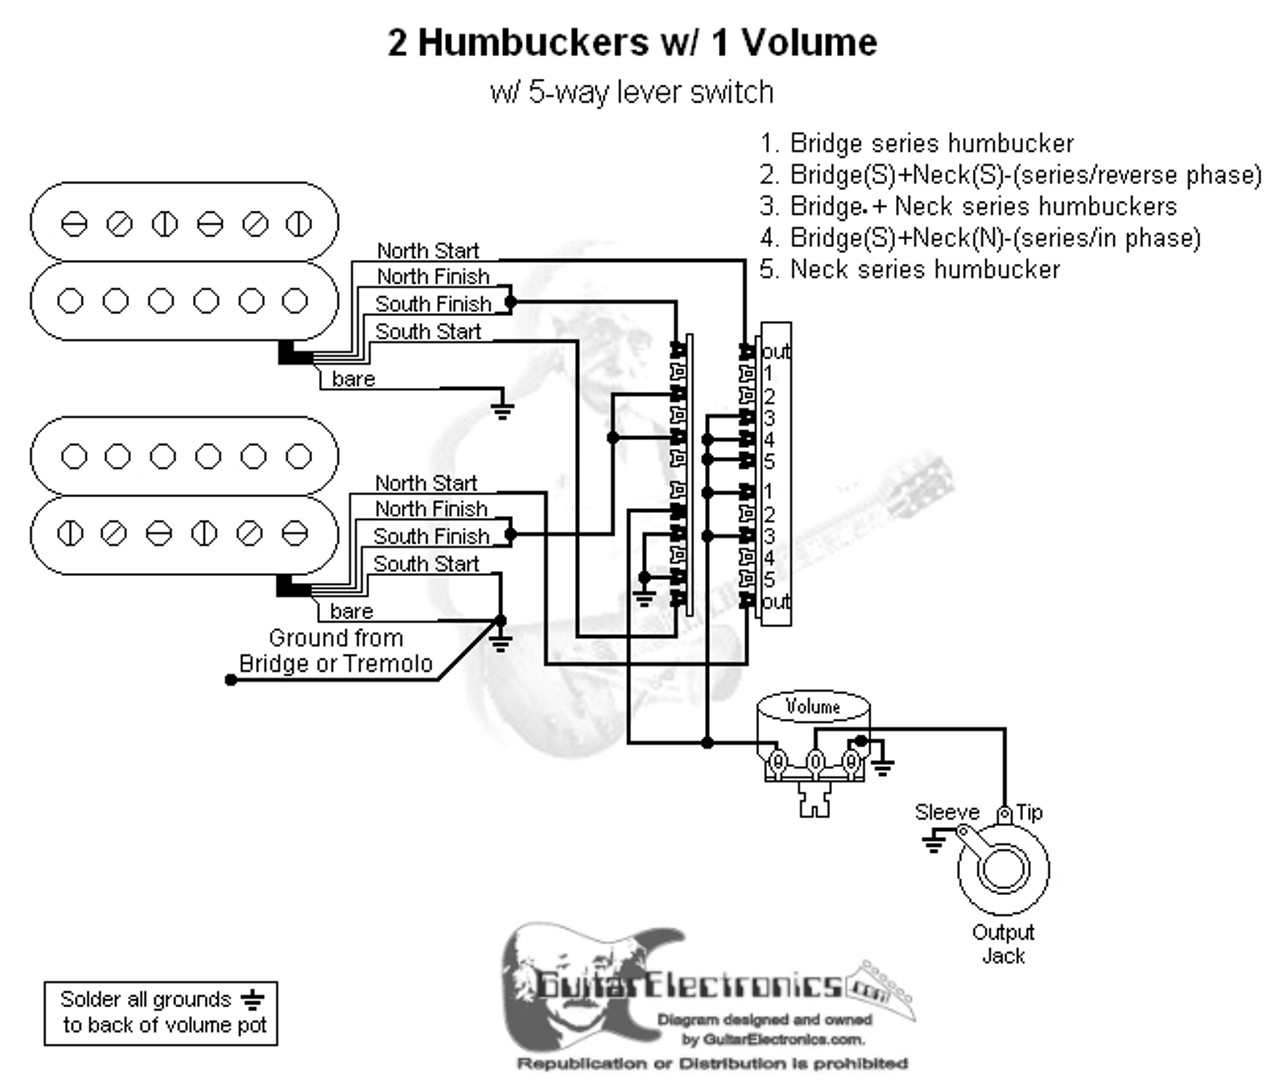 hight resolution of 2 humbuckers 5 way lever switch 1 volume 03 wiring diagram 2 humbuckers 5way lever switch 1 volume 1 tone 03